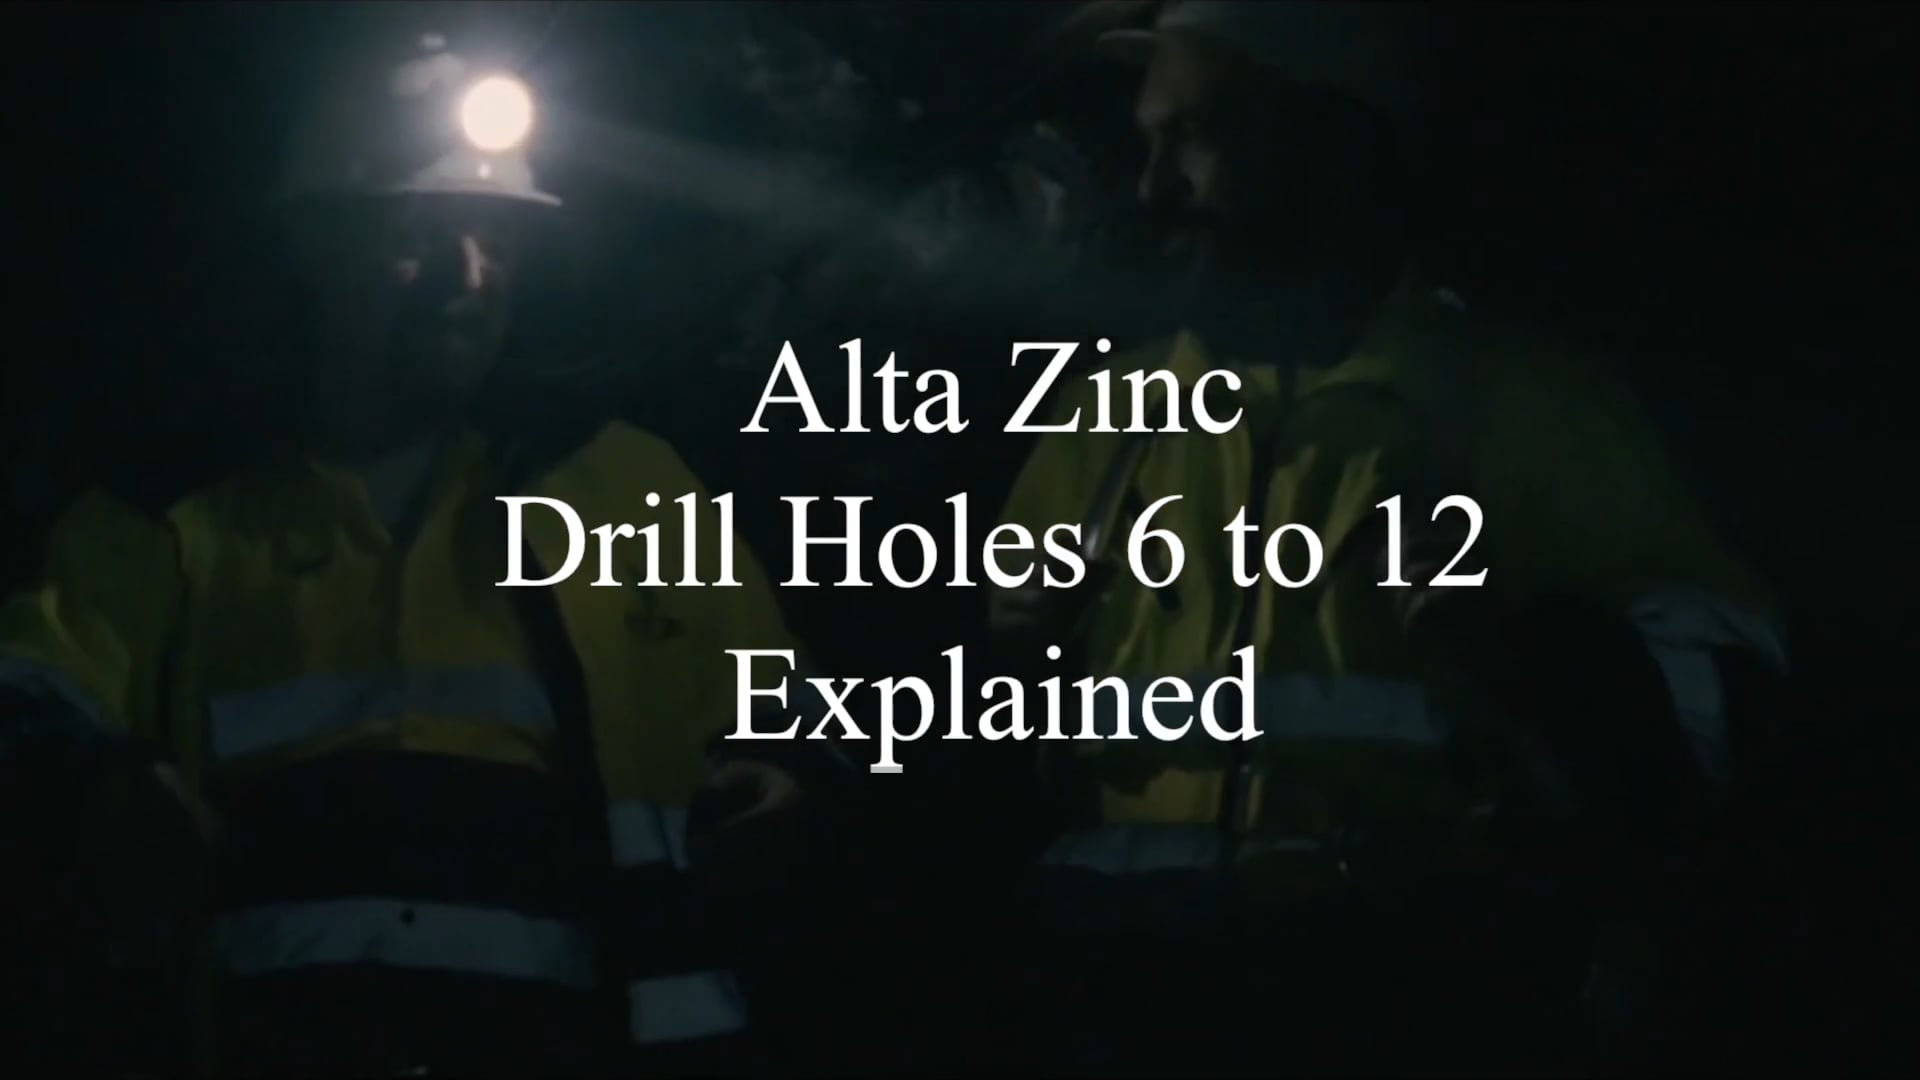 Alta Zinc: Drilling Results From Holes 6-12 Explained